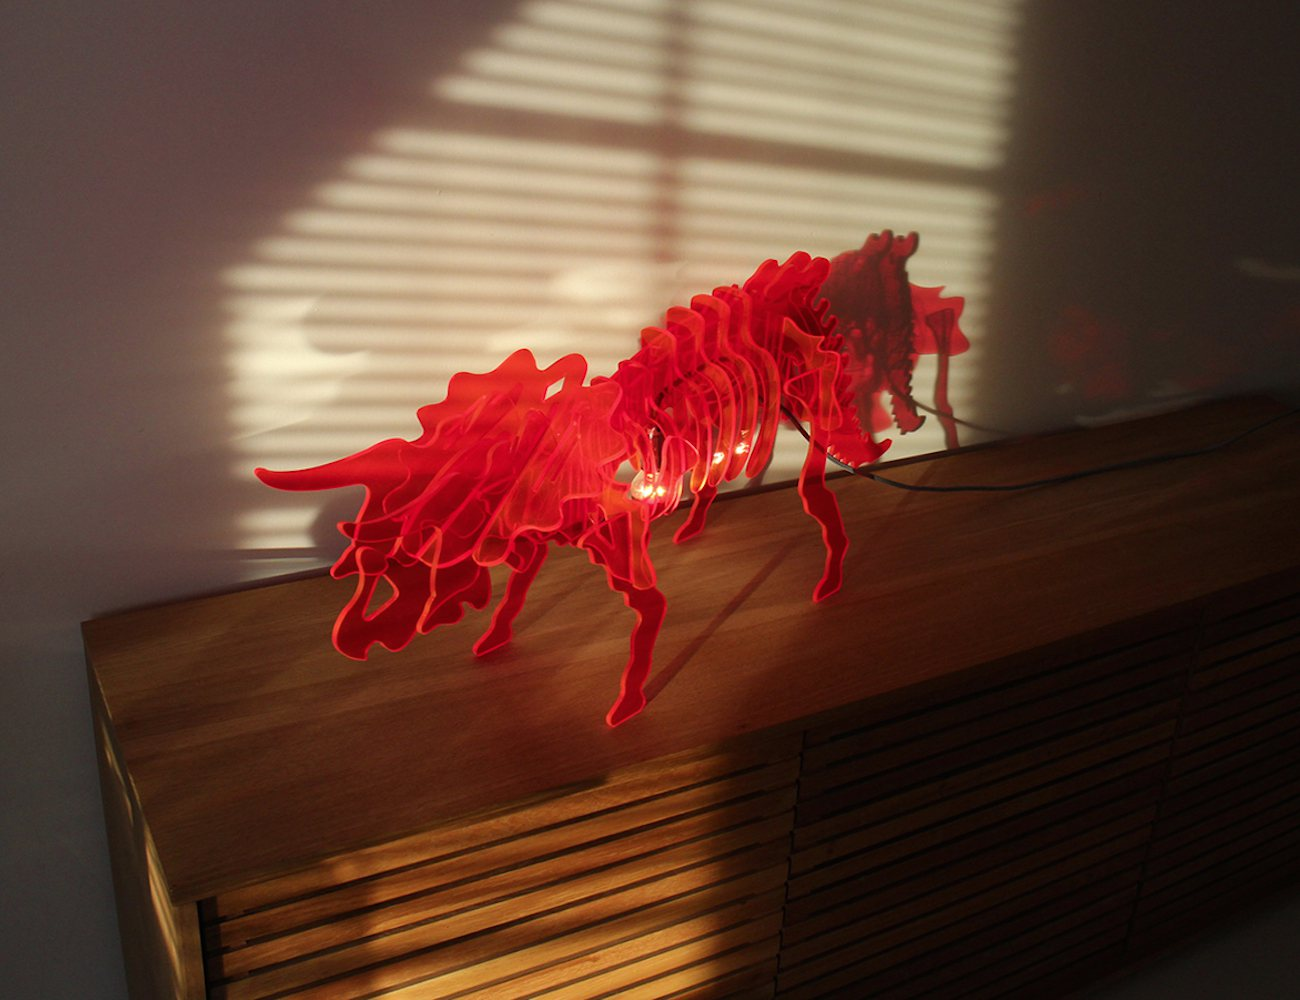 Dino light – A new kind of modern lamp